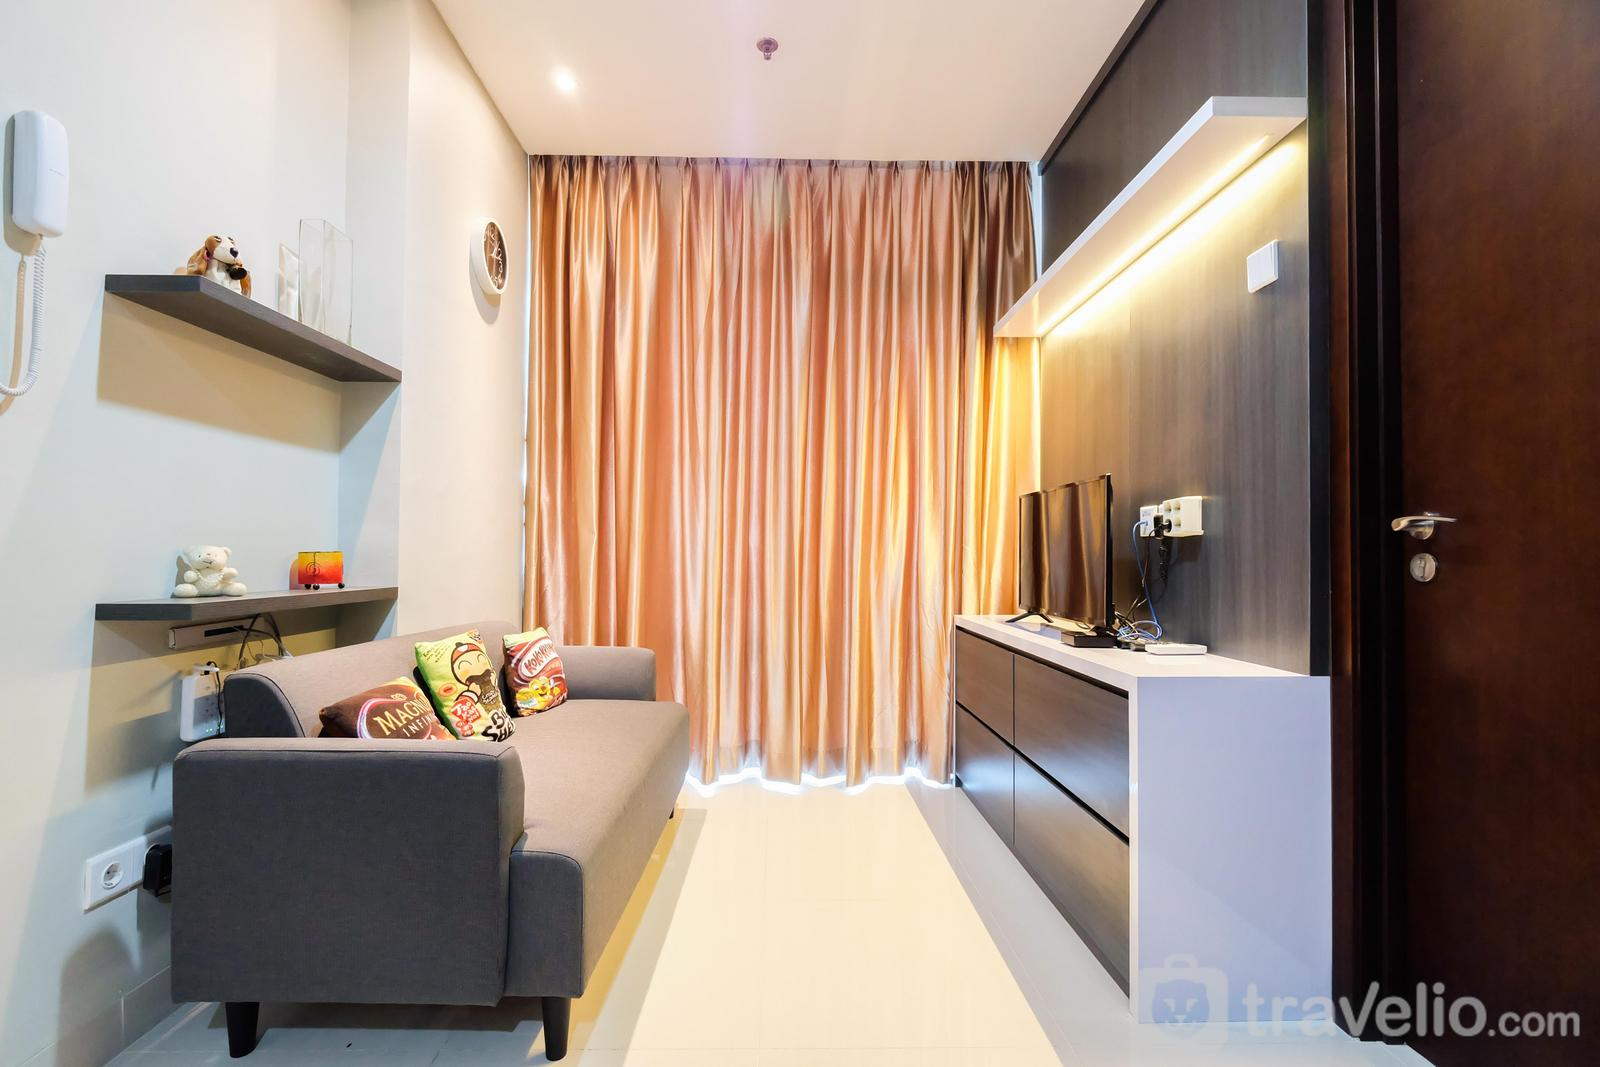 Brooklyn Apartment Alam Sutera - Best Price 1BR Brooklyn Apartment near IKEA Alam Sutera by Travelio